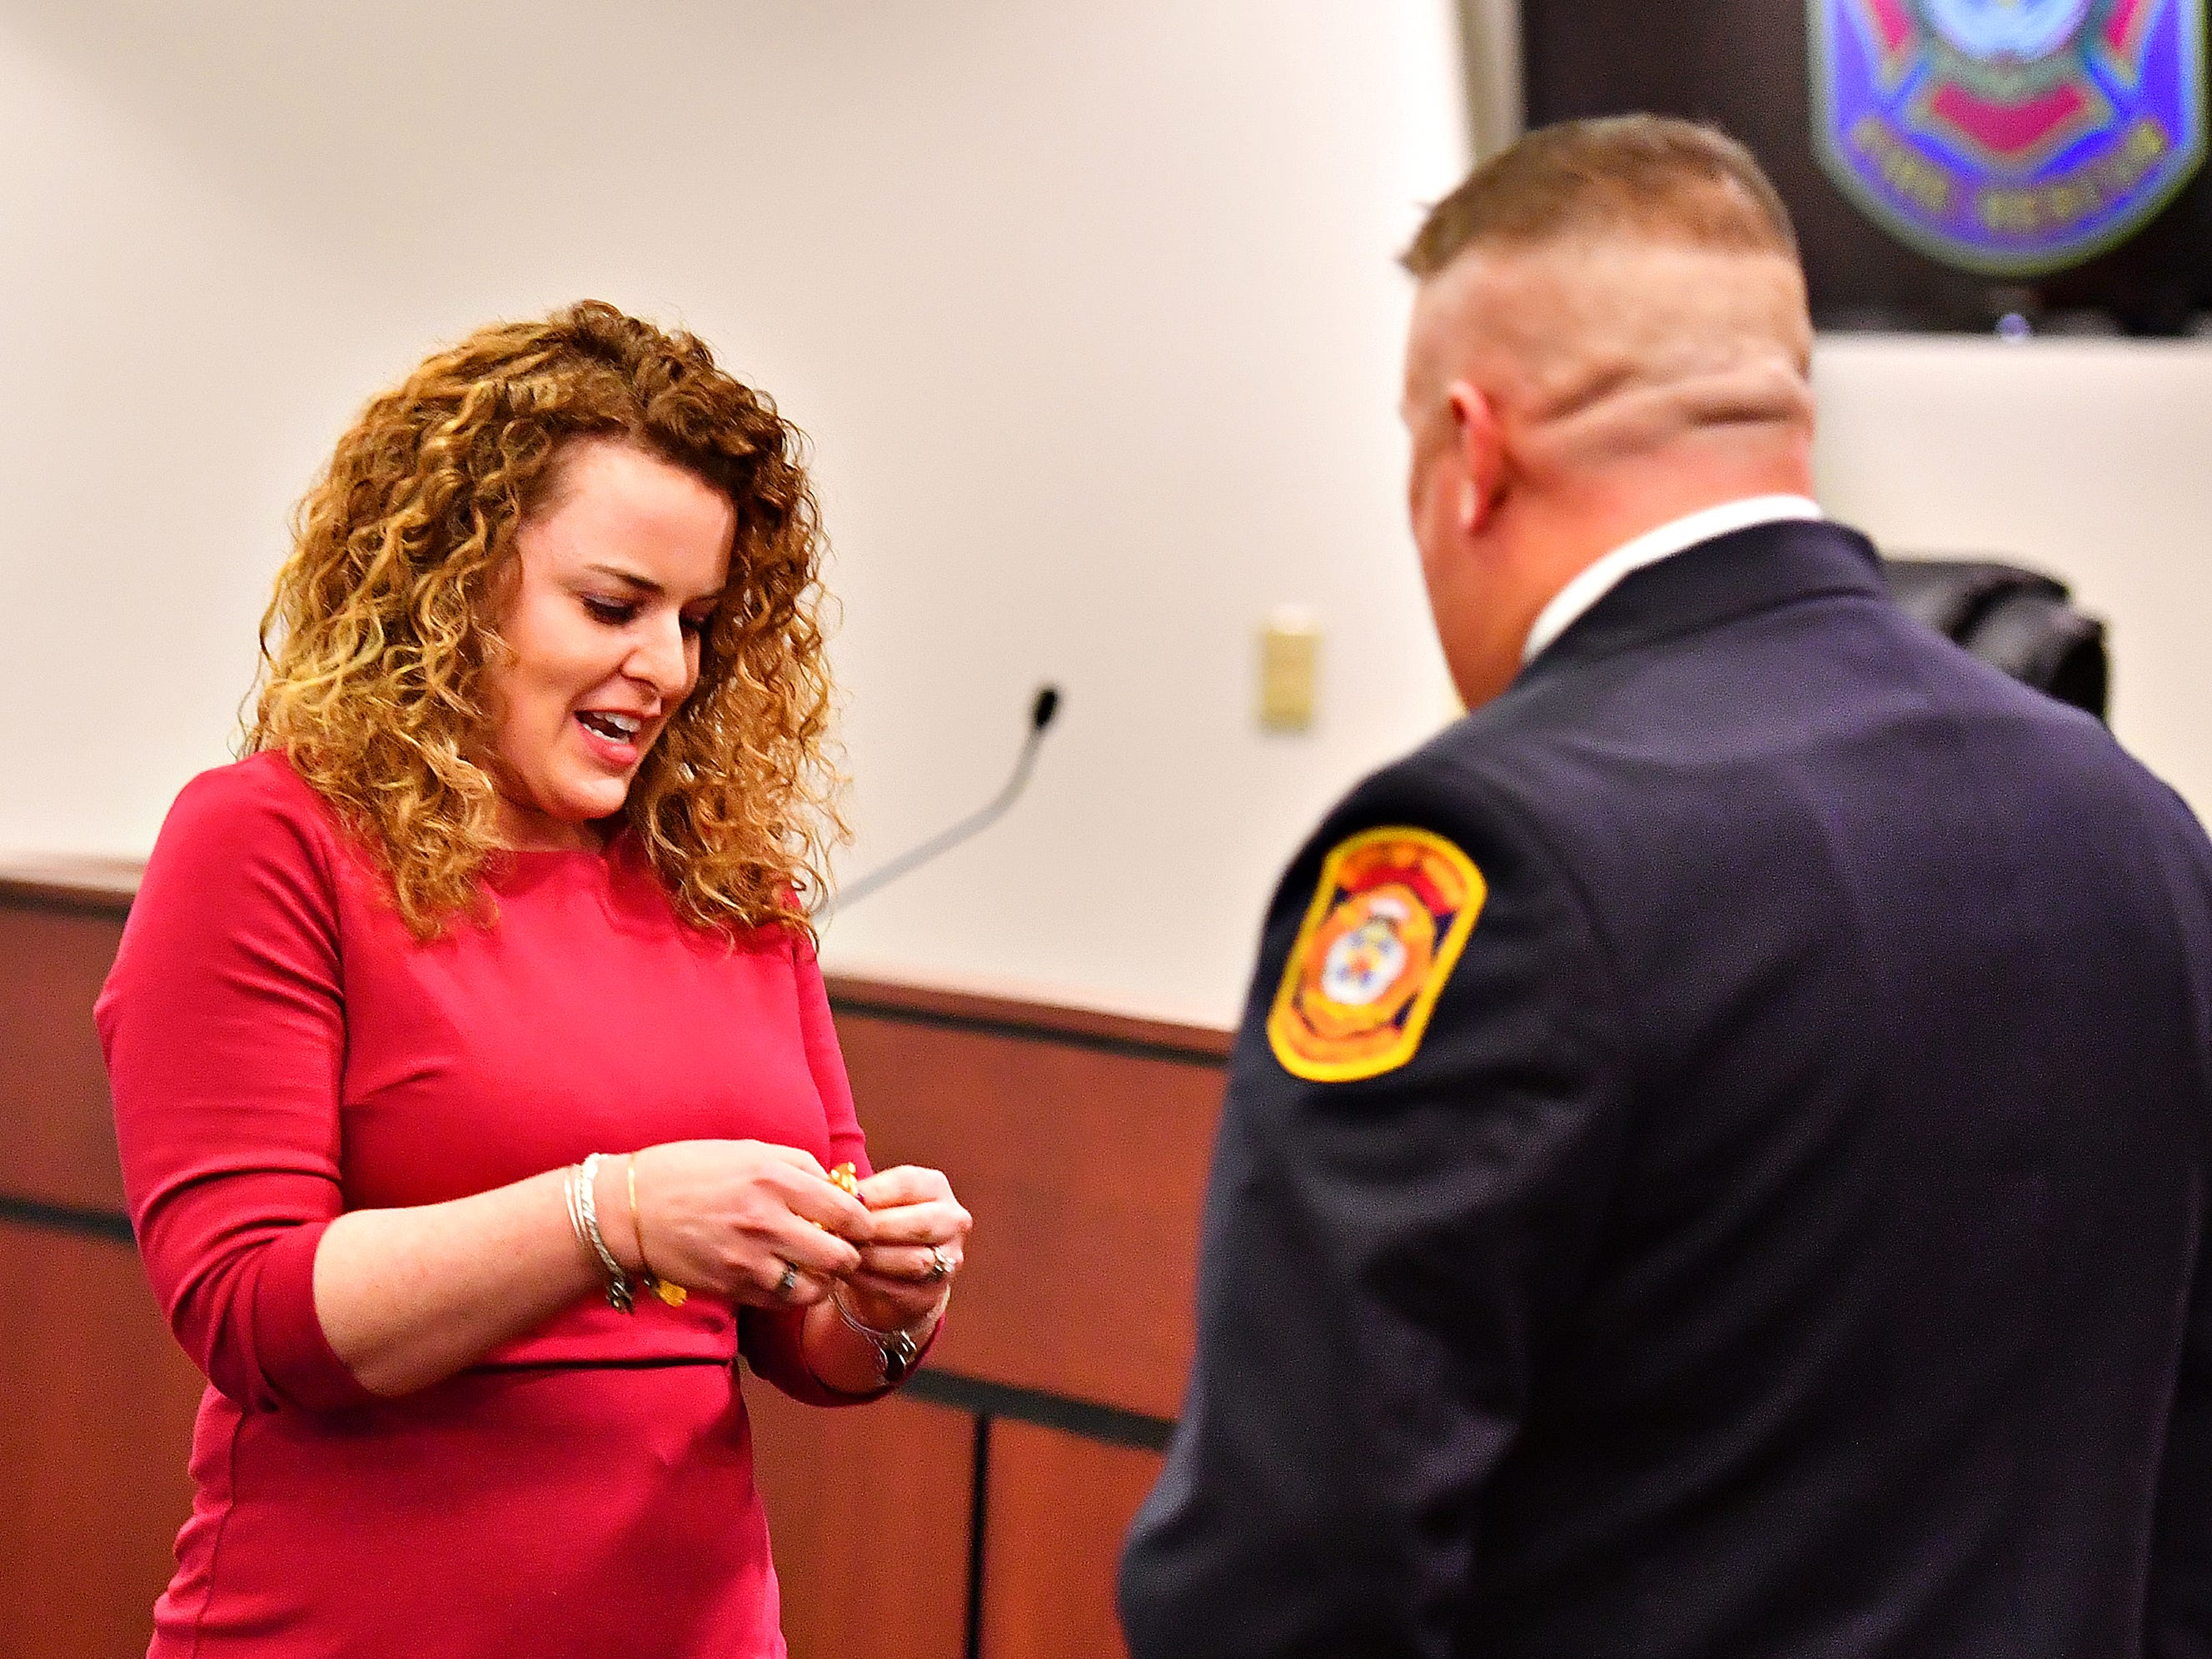 Jess Deardorff, left, prepares to pin her husband, York City Fire Chief Chad Deardorff during his swearing-in ceremony at York City Hall in York City, Friday, March 8, 2019. Dawn J. Sagert photo